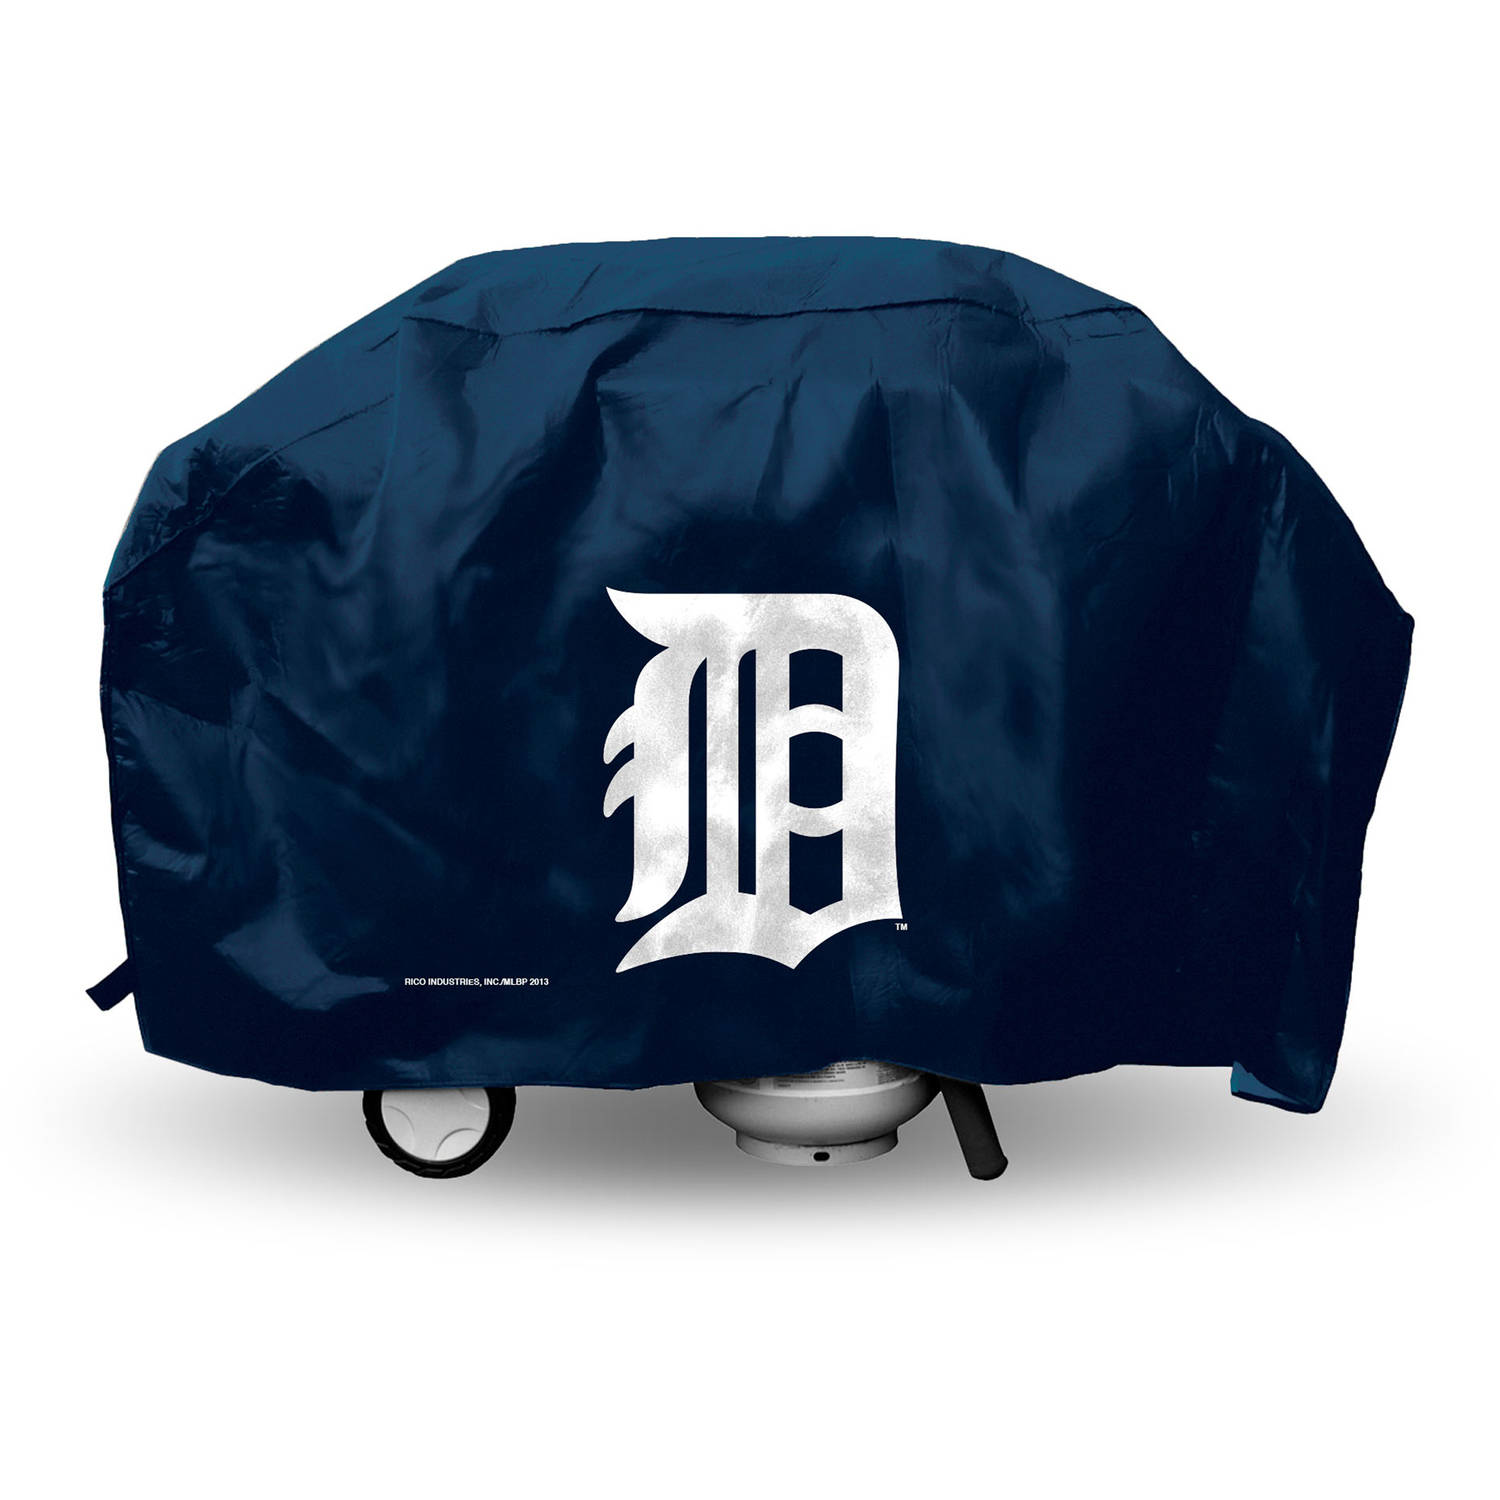 MLB Rico Industries Deluxe Grill Cover, Detroit Tigers